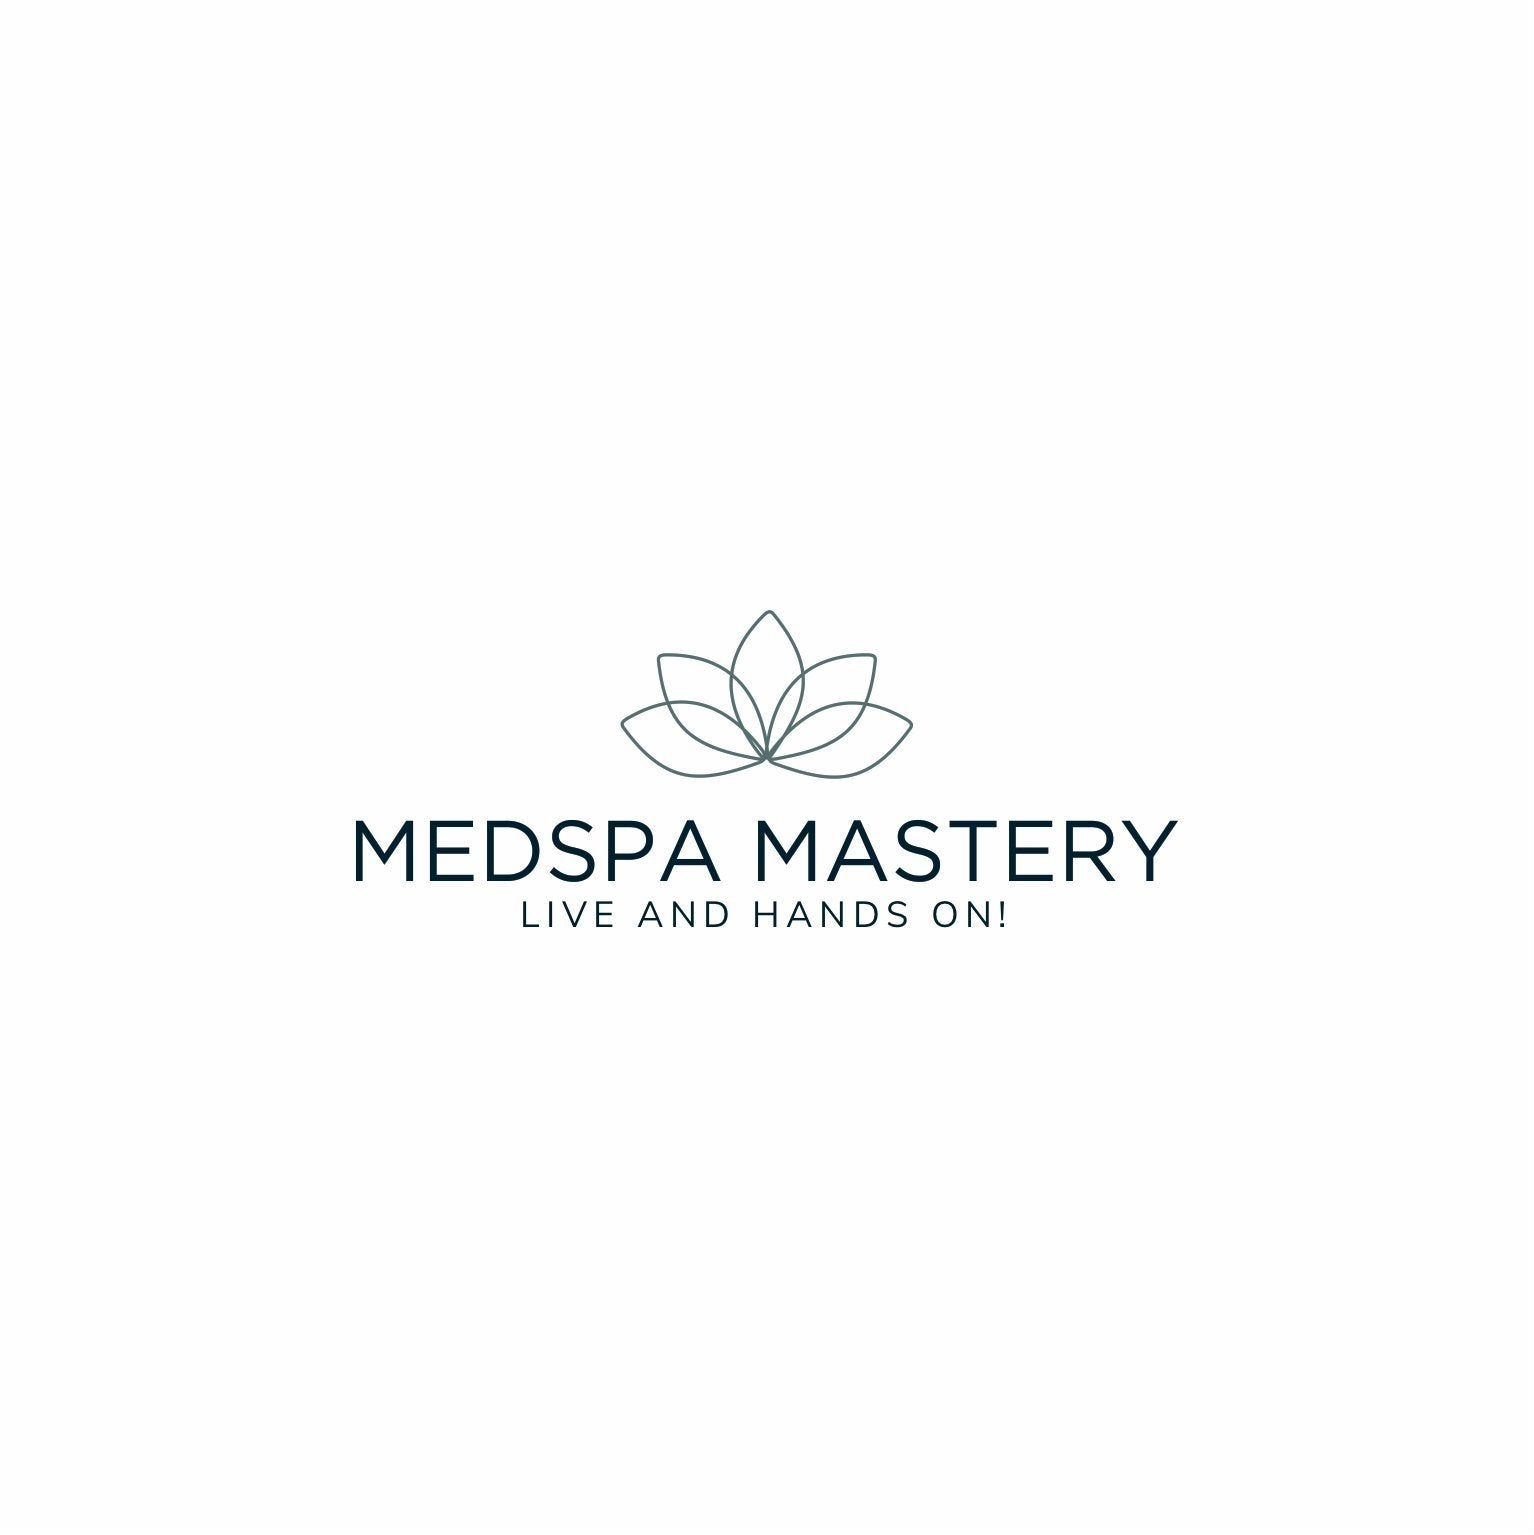 MedSpa Mastery: Live and Hands On! (September 12-13, 2020)